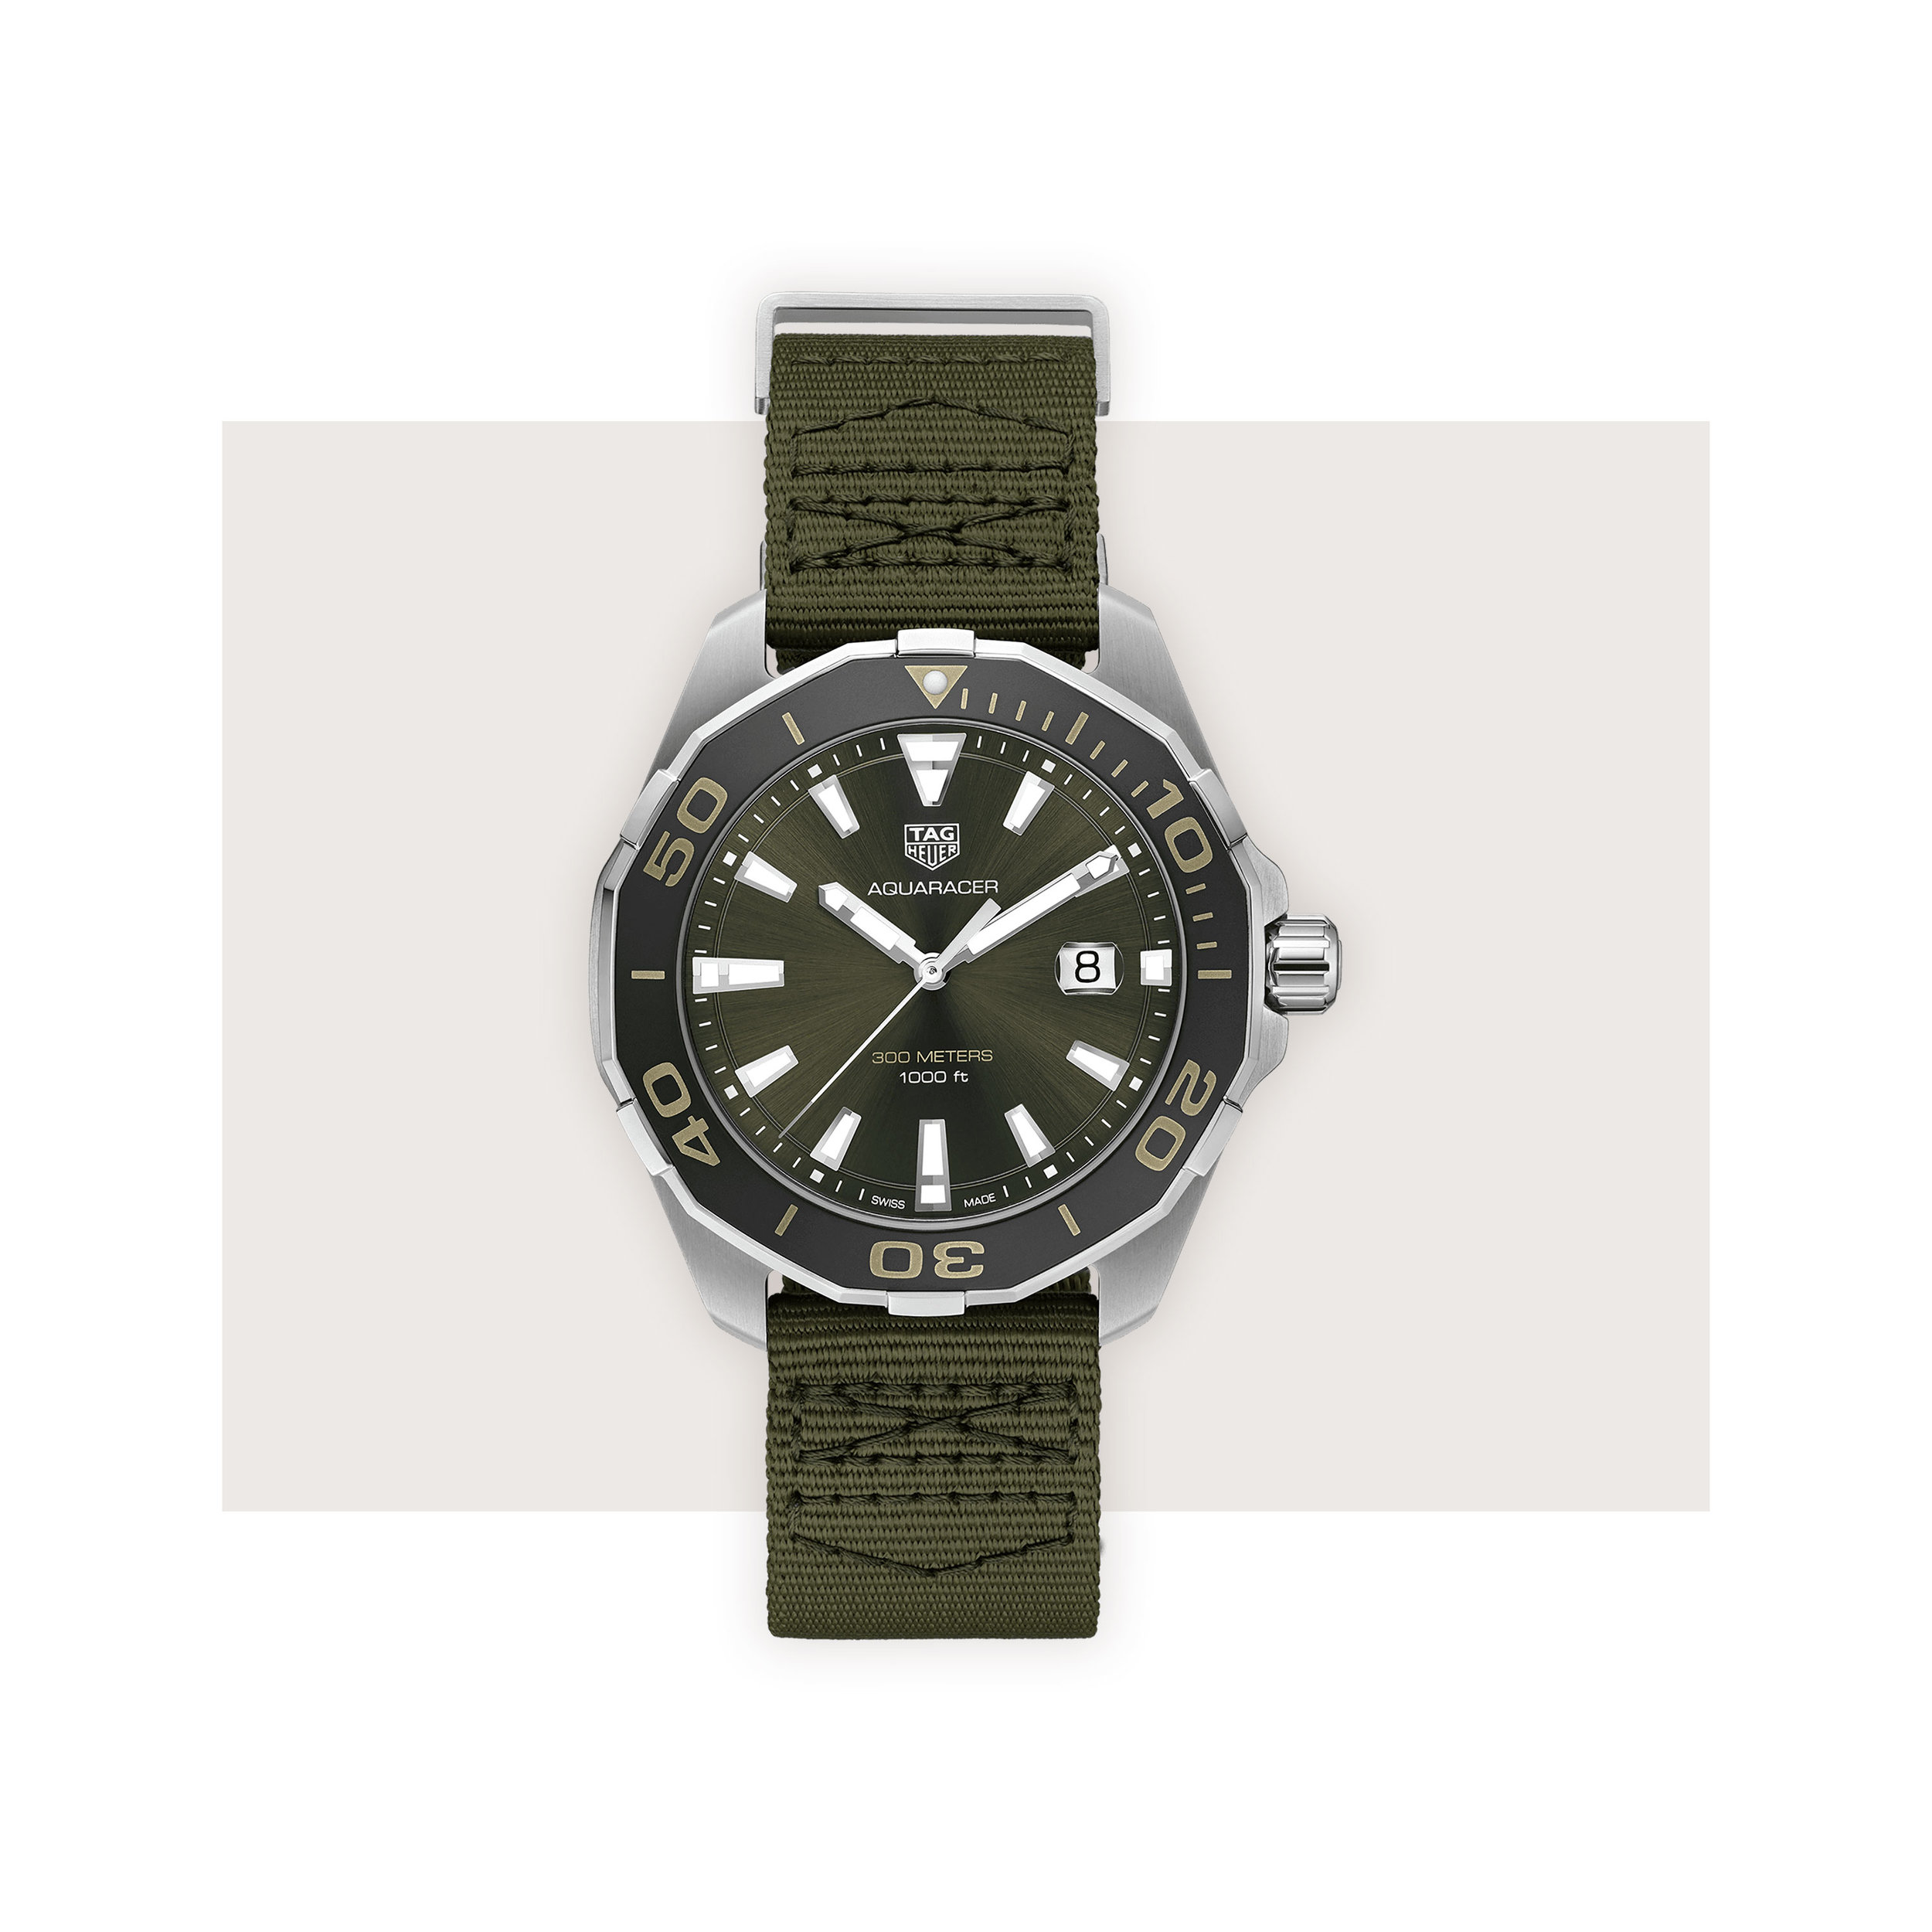 TAG Heuer - A sporty classic gets a military update in Khaki green with a lightweight textile strap. The most off-duty appropriate on our list, the Aquaracer is fittingly water resistant to 300 meters.TAG Heuer Aquaracer, $1,600; troverie.com